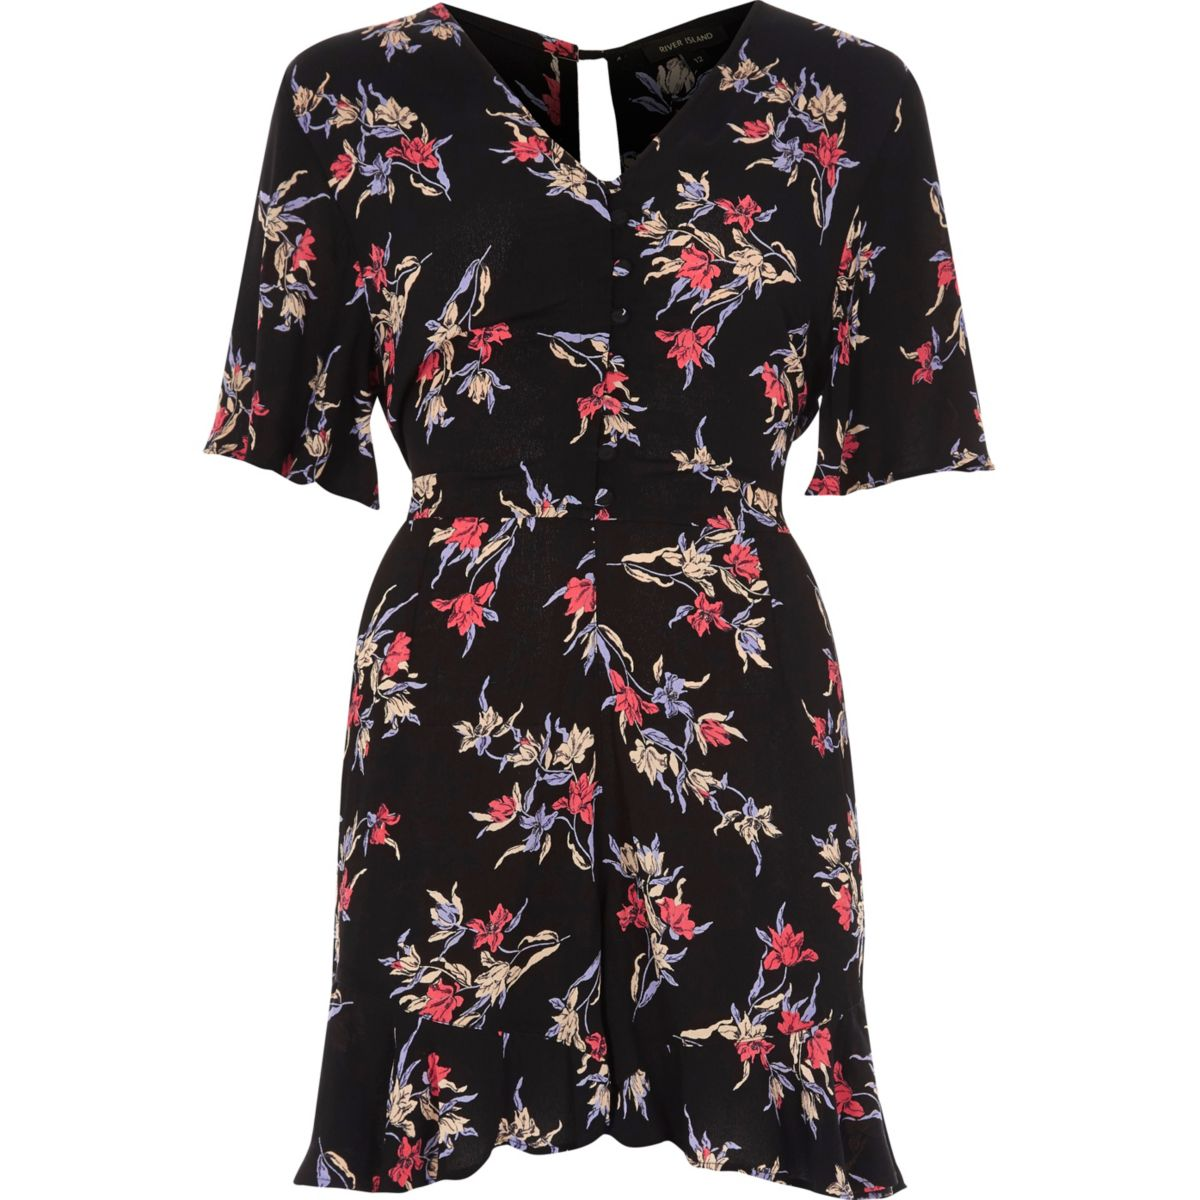 Black floral print tea dress style playsuit